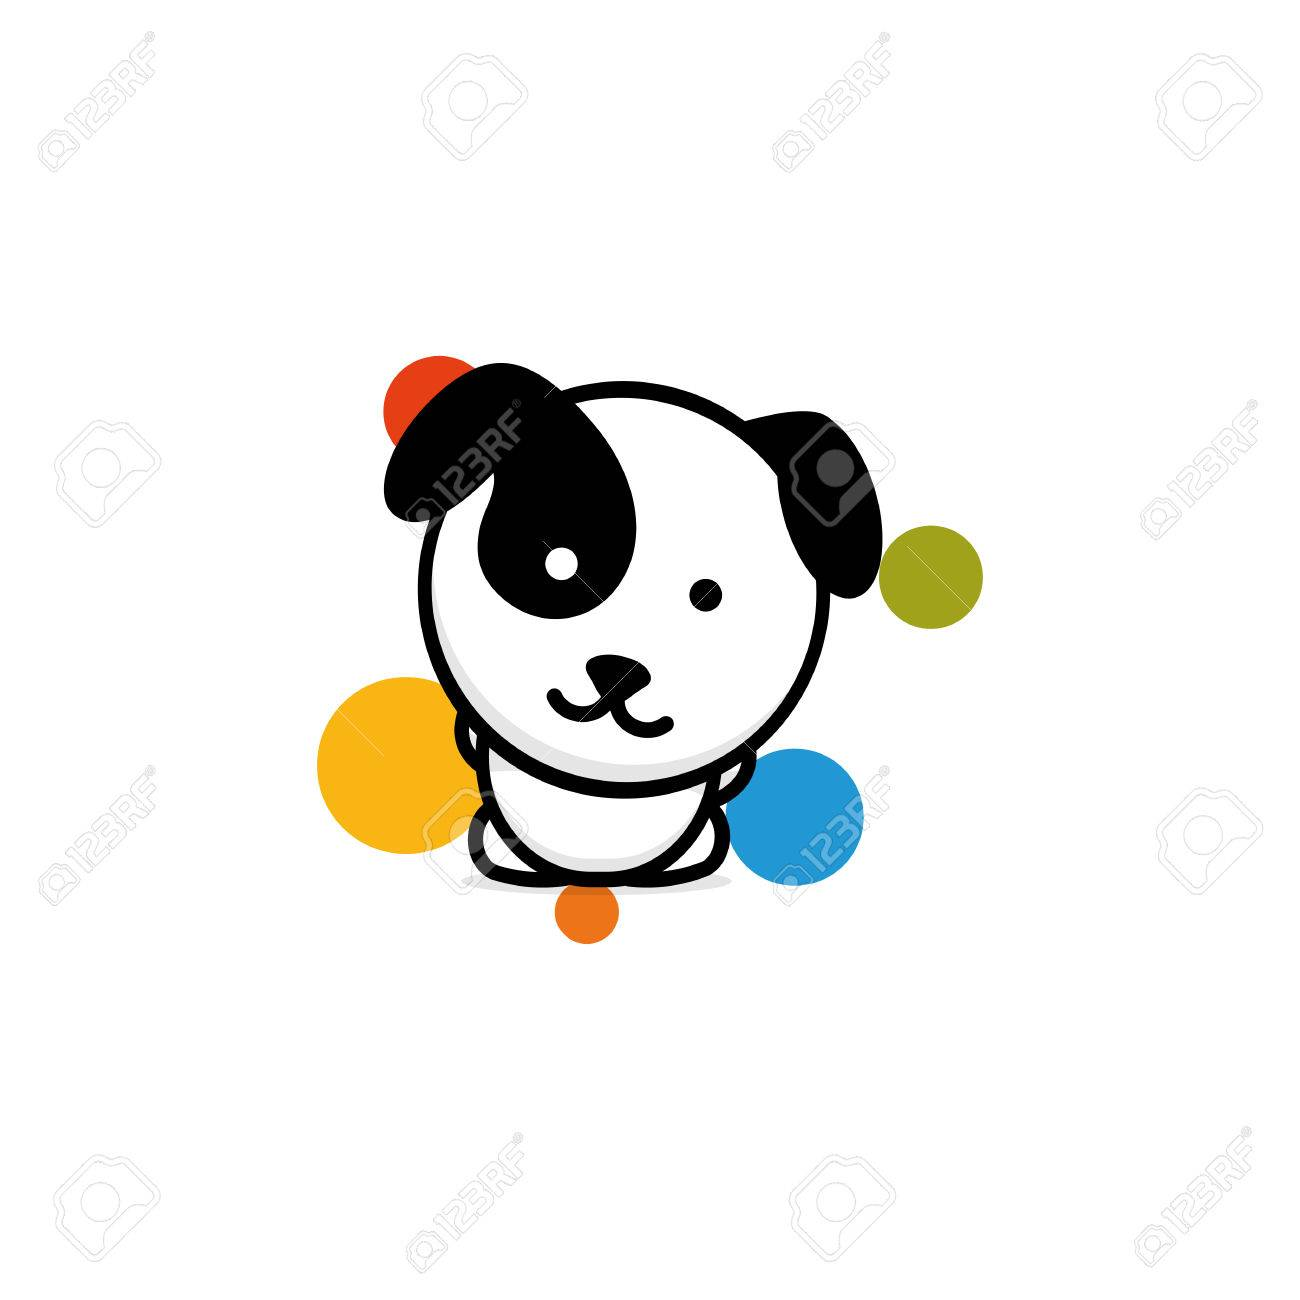 Cute Dog With Colorful Balls Vector Illustration Baby Puppy Royalty Free Cliparts Vectors And Stock Illustration Image 80443706